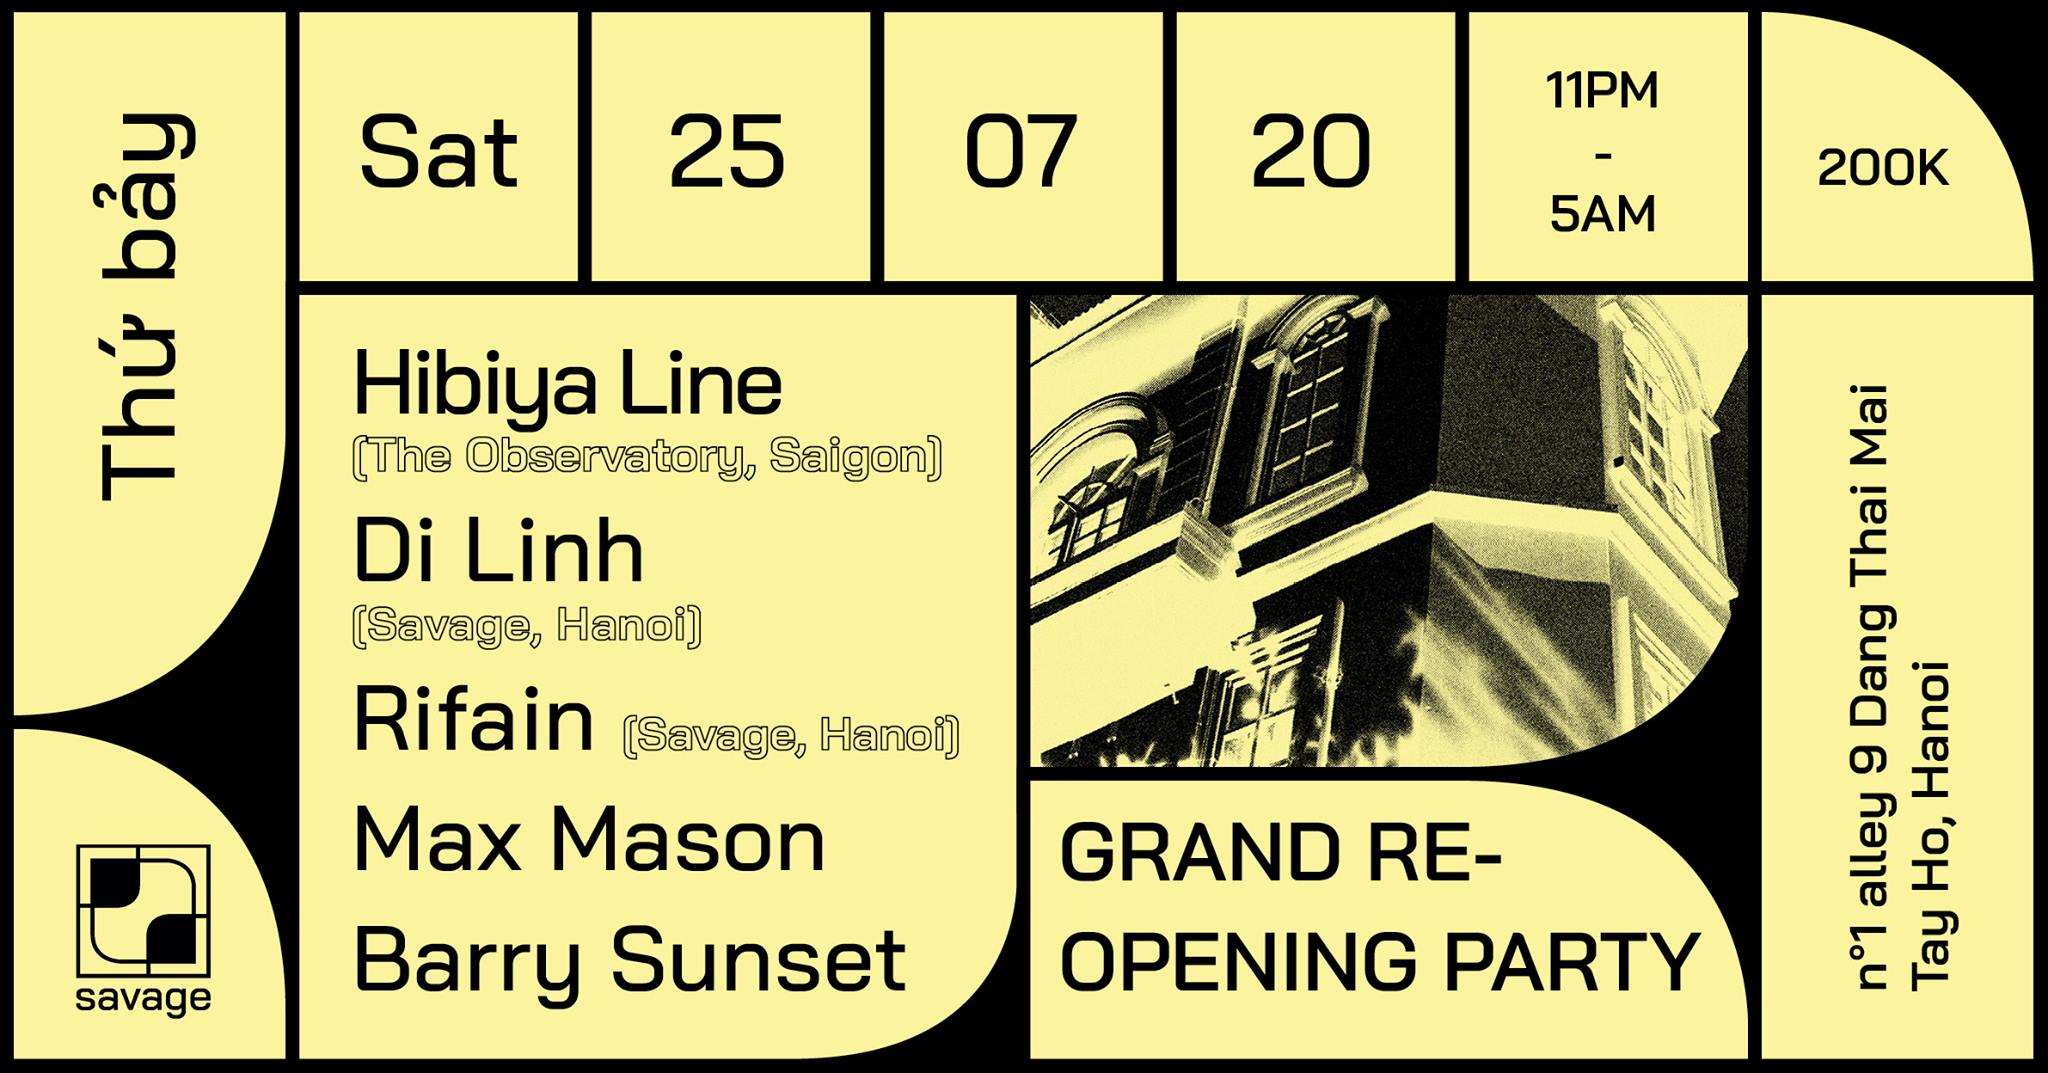 SAVAGE Grand Re-Opening Party part II:  Hibiya Line & Di Linh & Rifain